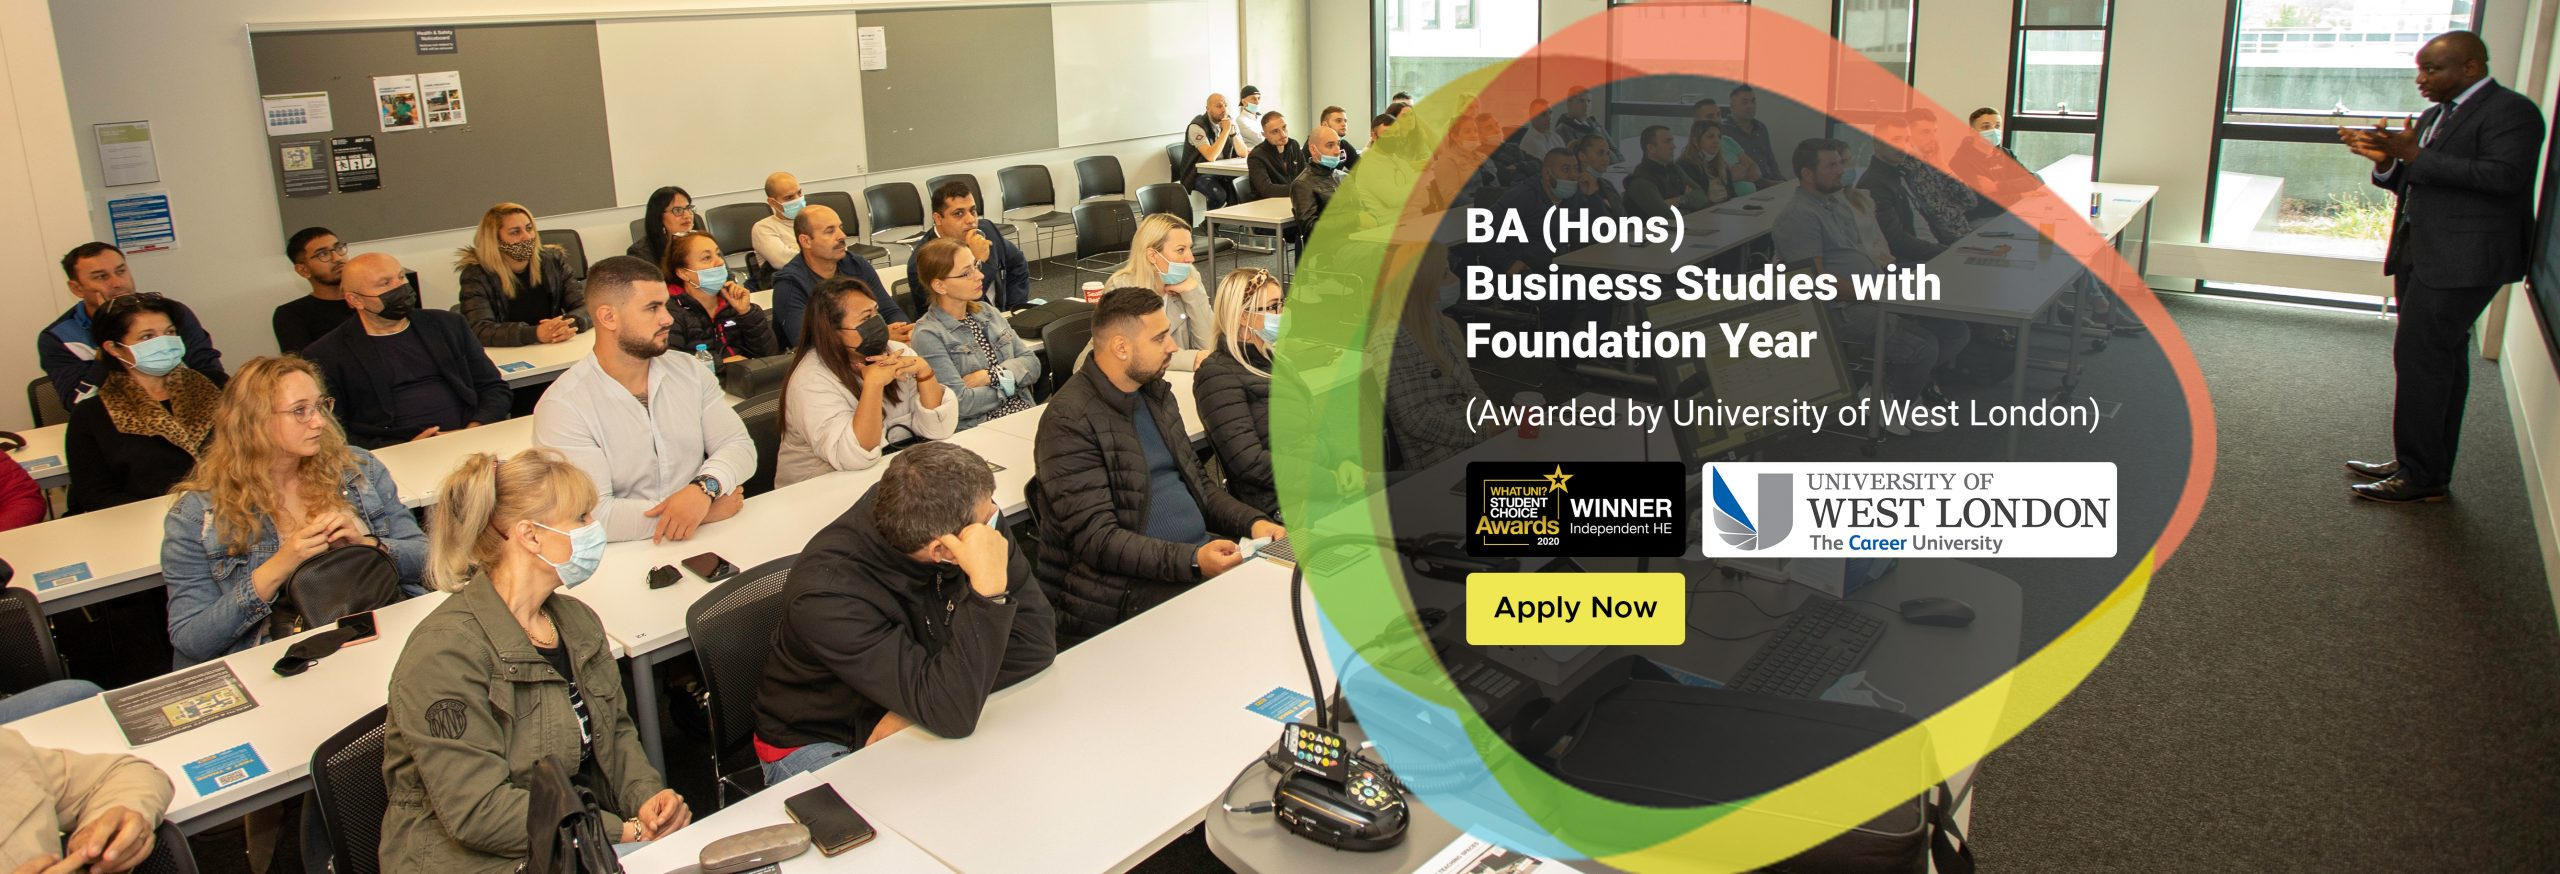 BA (Hons) Business Studies with Foundation Year (Awarded by University of West London)